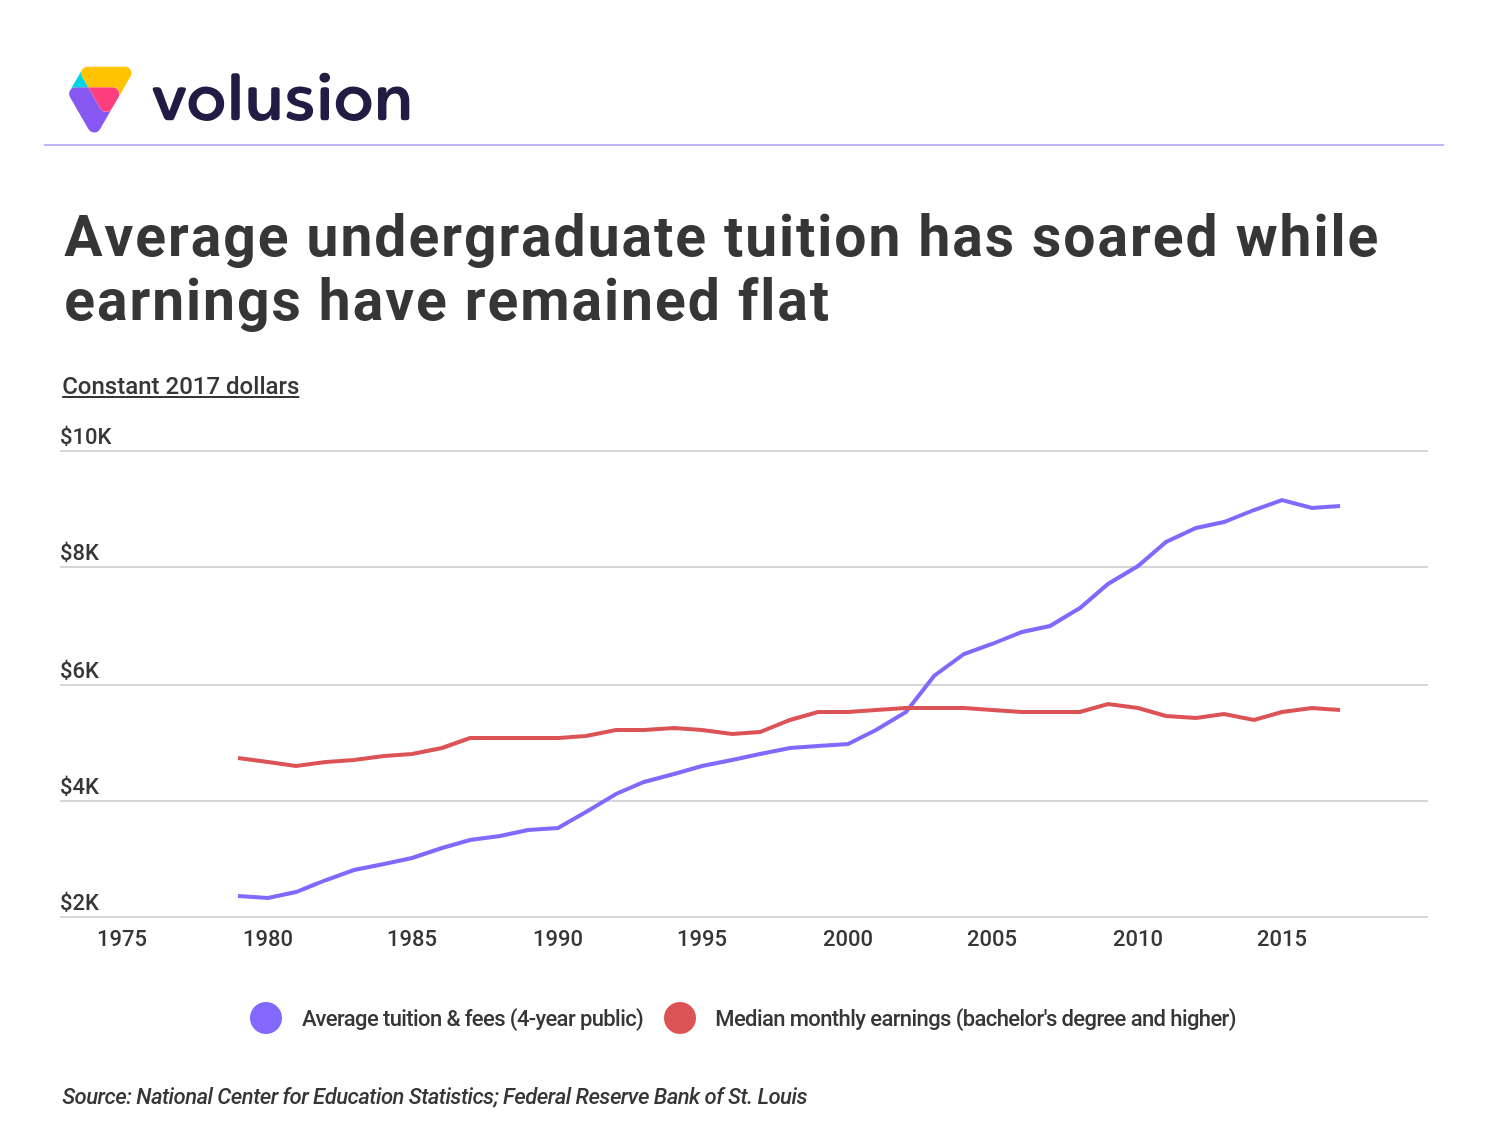 Line graph comparing average tuition rates vs. median monthly earnings, 1980-2018